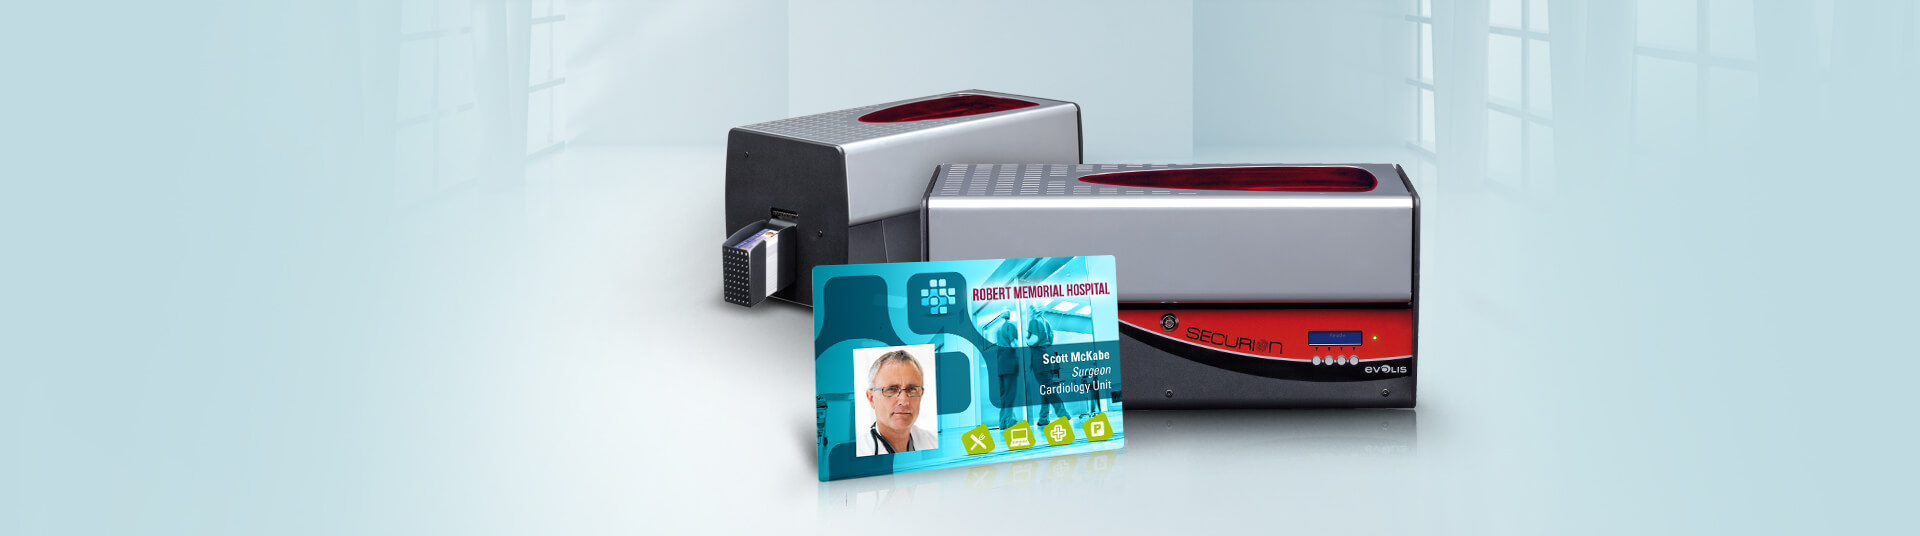 Evolis Securion Card Printers